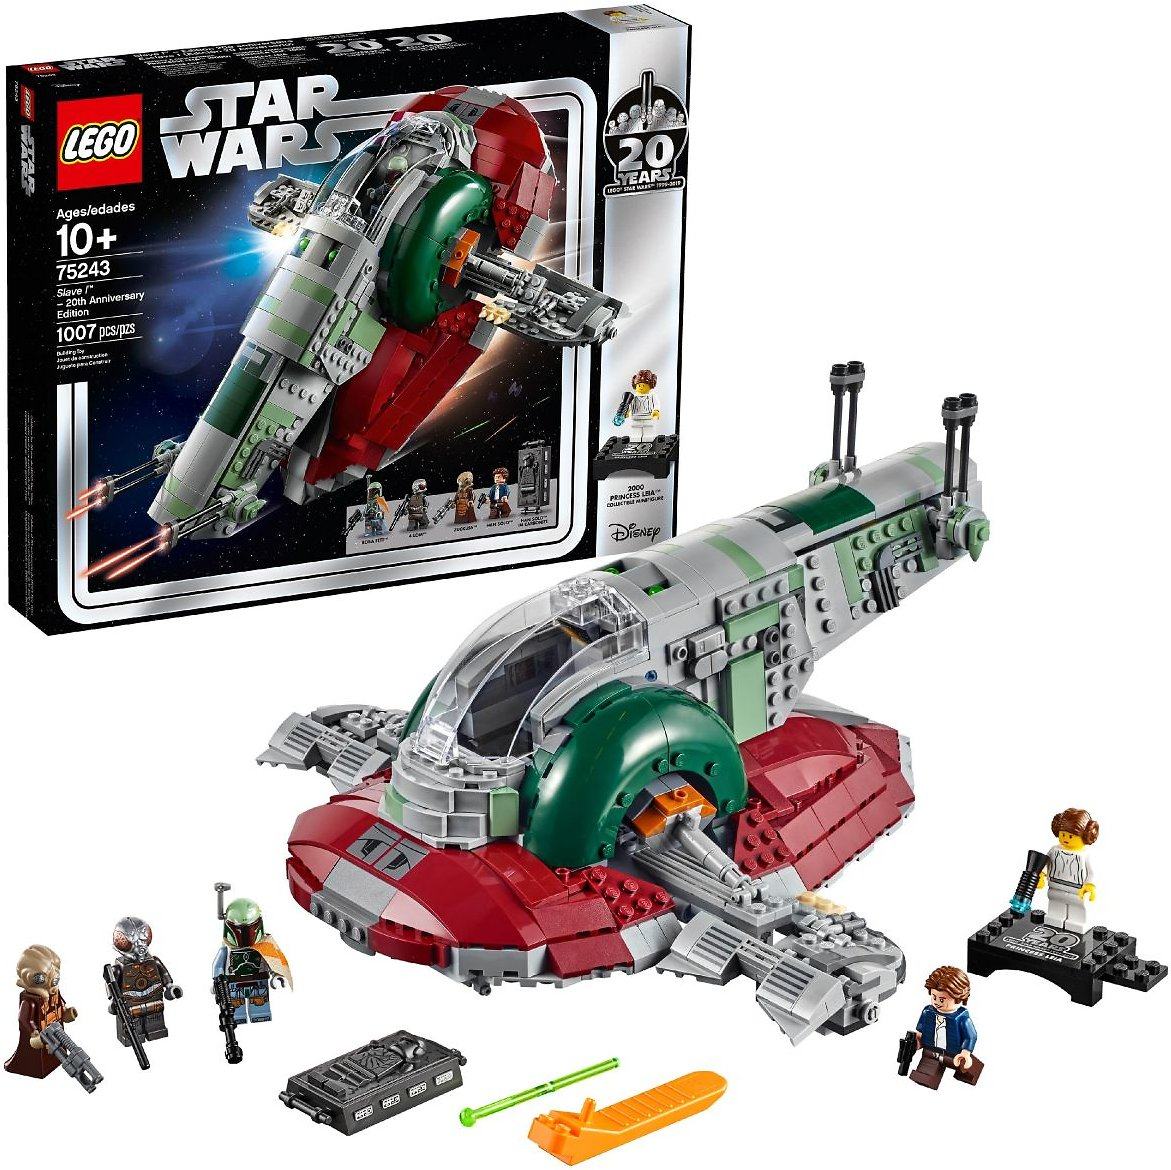 LEGO Star Wars Slave L 20th Anniversary Edition 75243 Kit